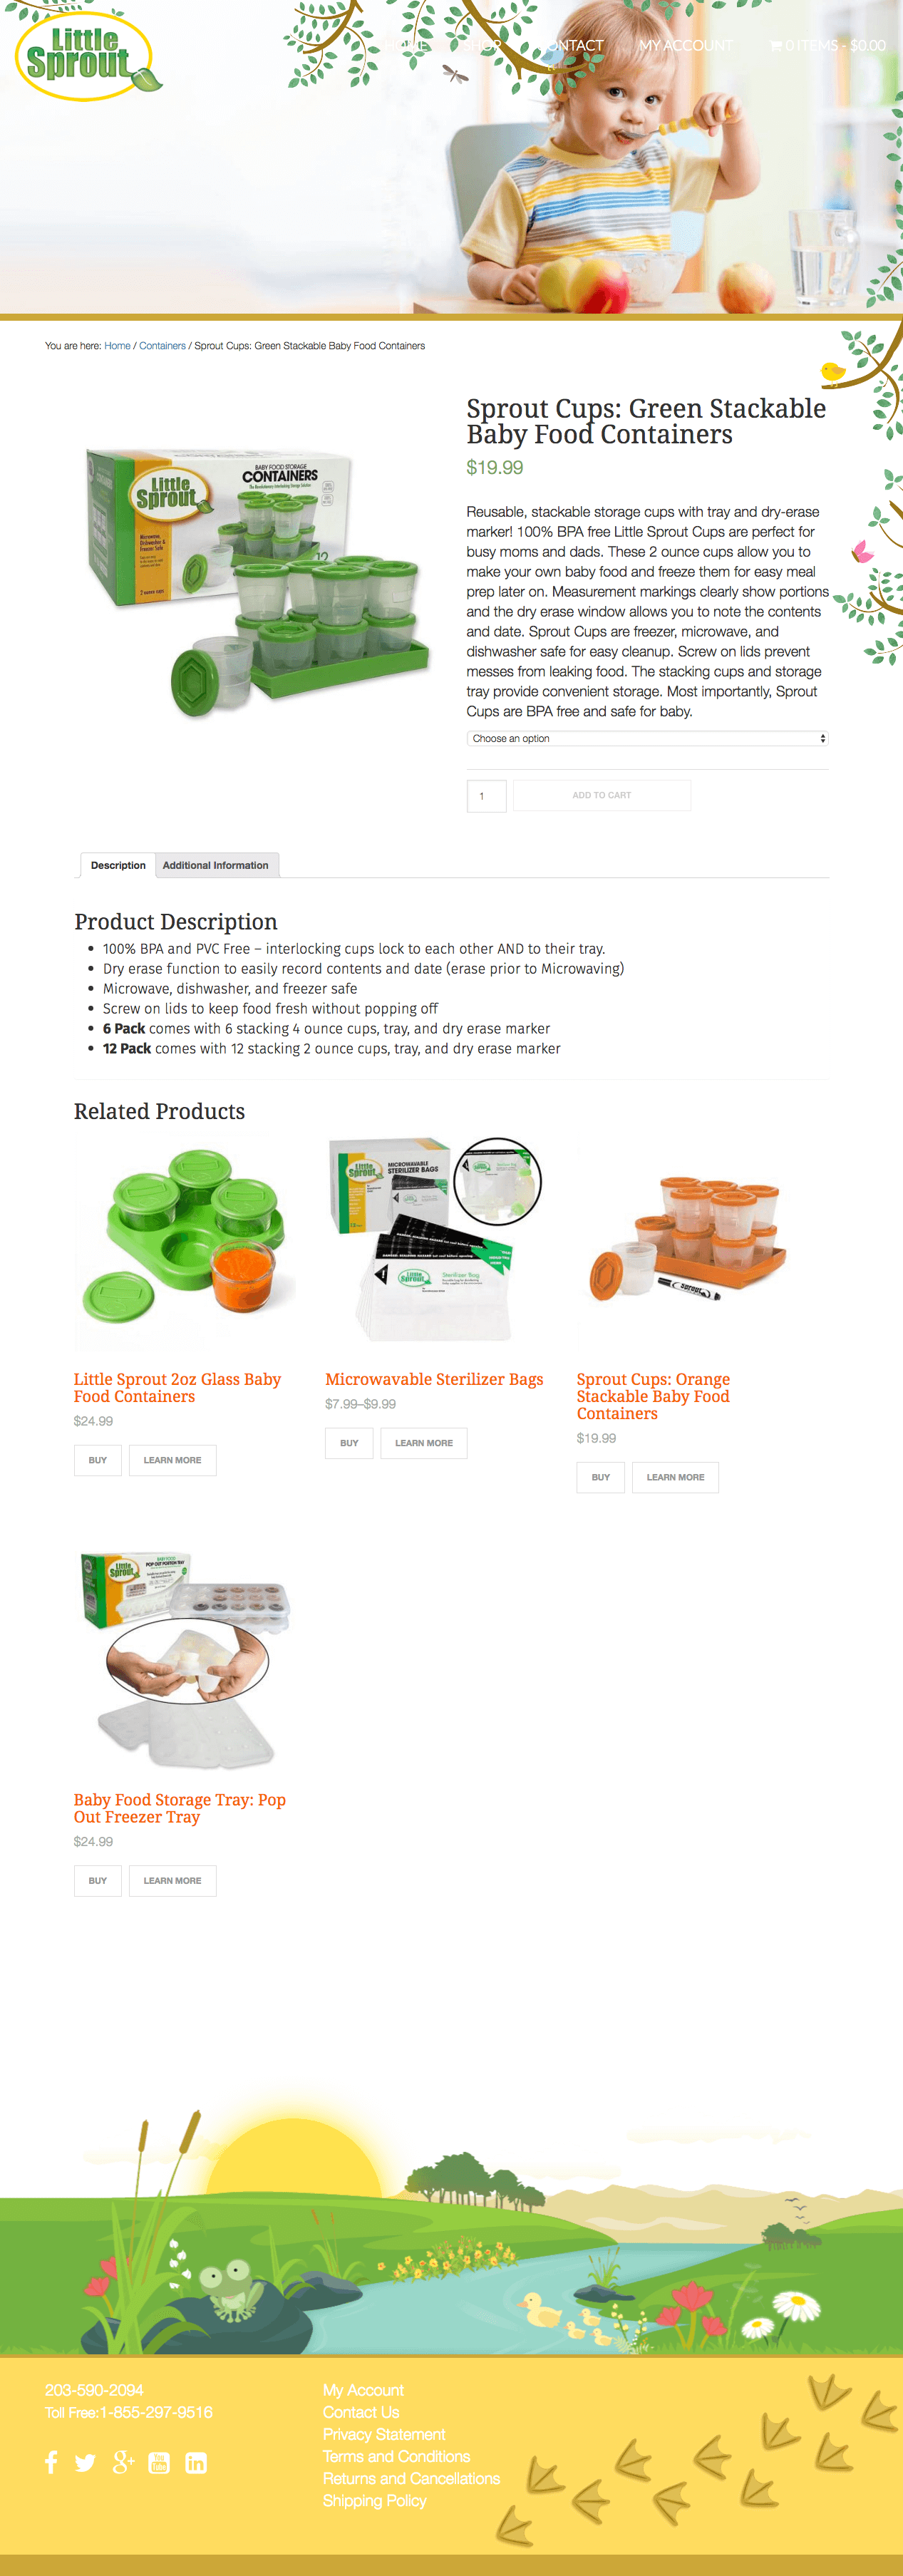 Little Spout BPA + PVC Free Baby Food Containers and Accessories, website design and build by Katie Peterson, Front End Web Developer and Designer at SCS Direct Inc. in New Haven, Connecticut